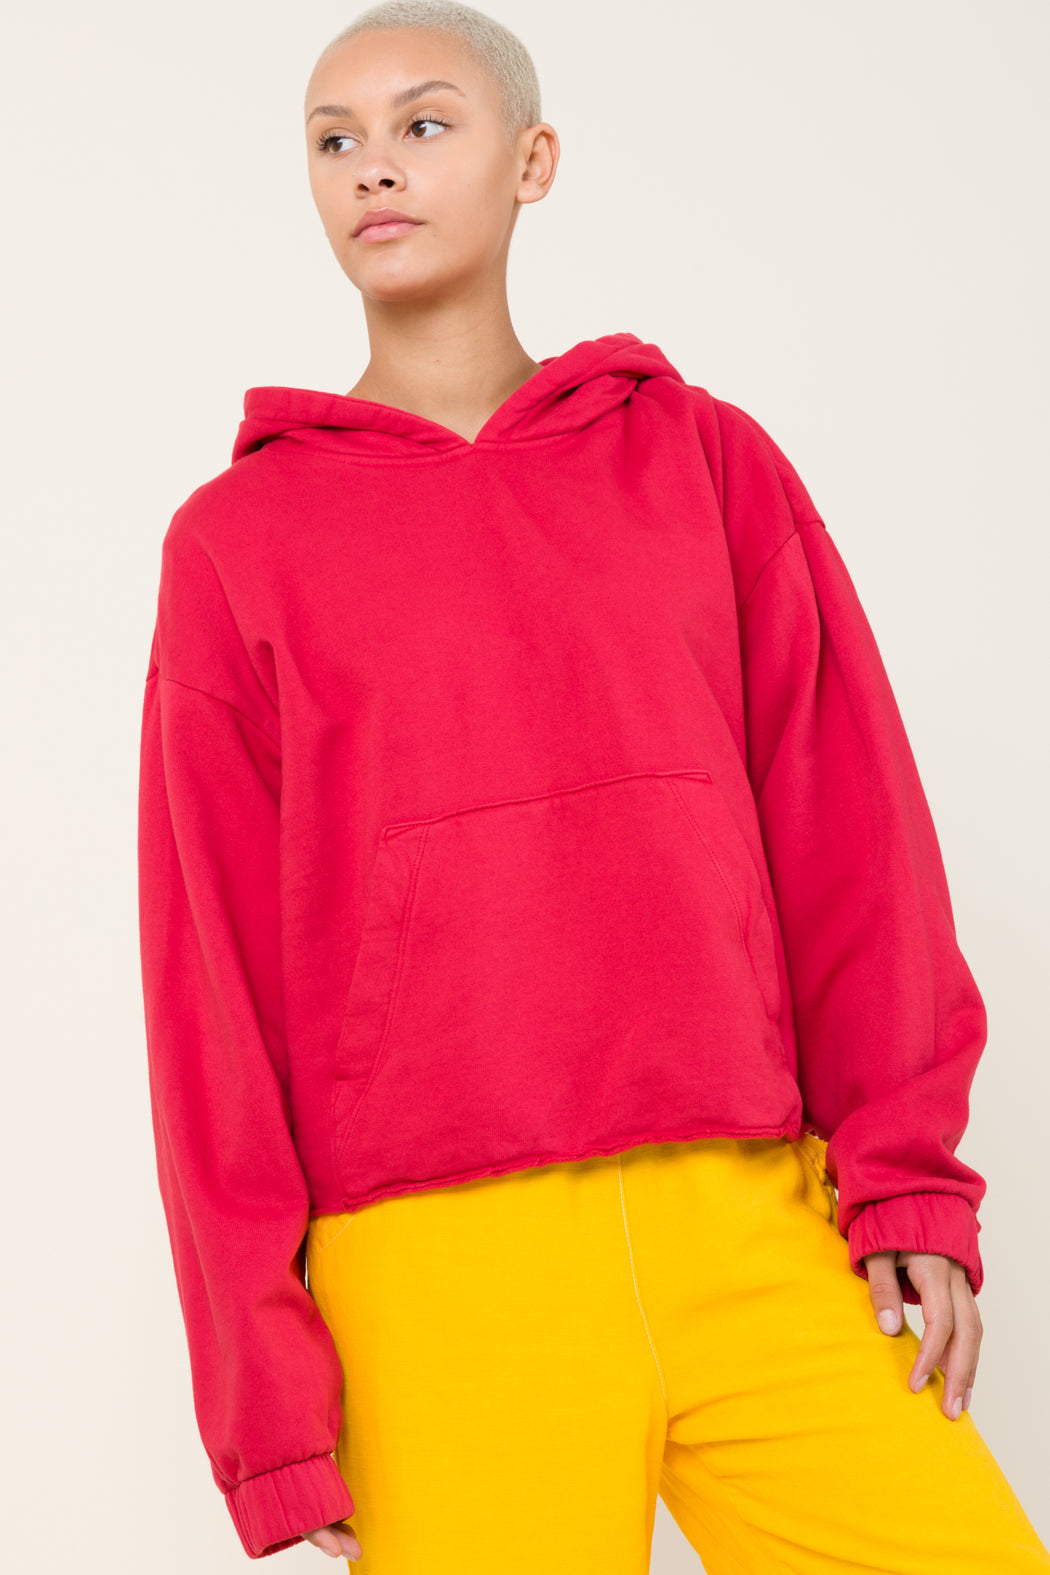 Our Band Together hoodie in Lipstick is an oversized pullover hoodie with deconstructed hem and elasticated cuffs. Evocative of the 70's era home sewing, the smaller hood and oversized fit update this style.